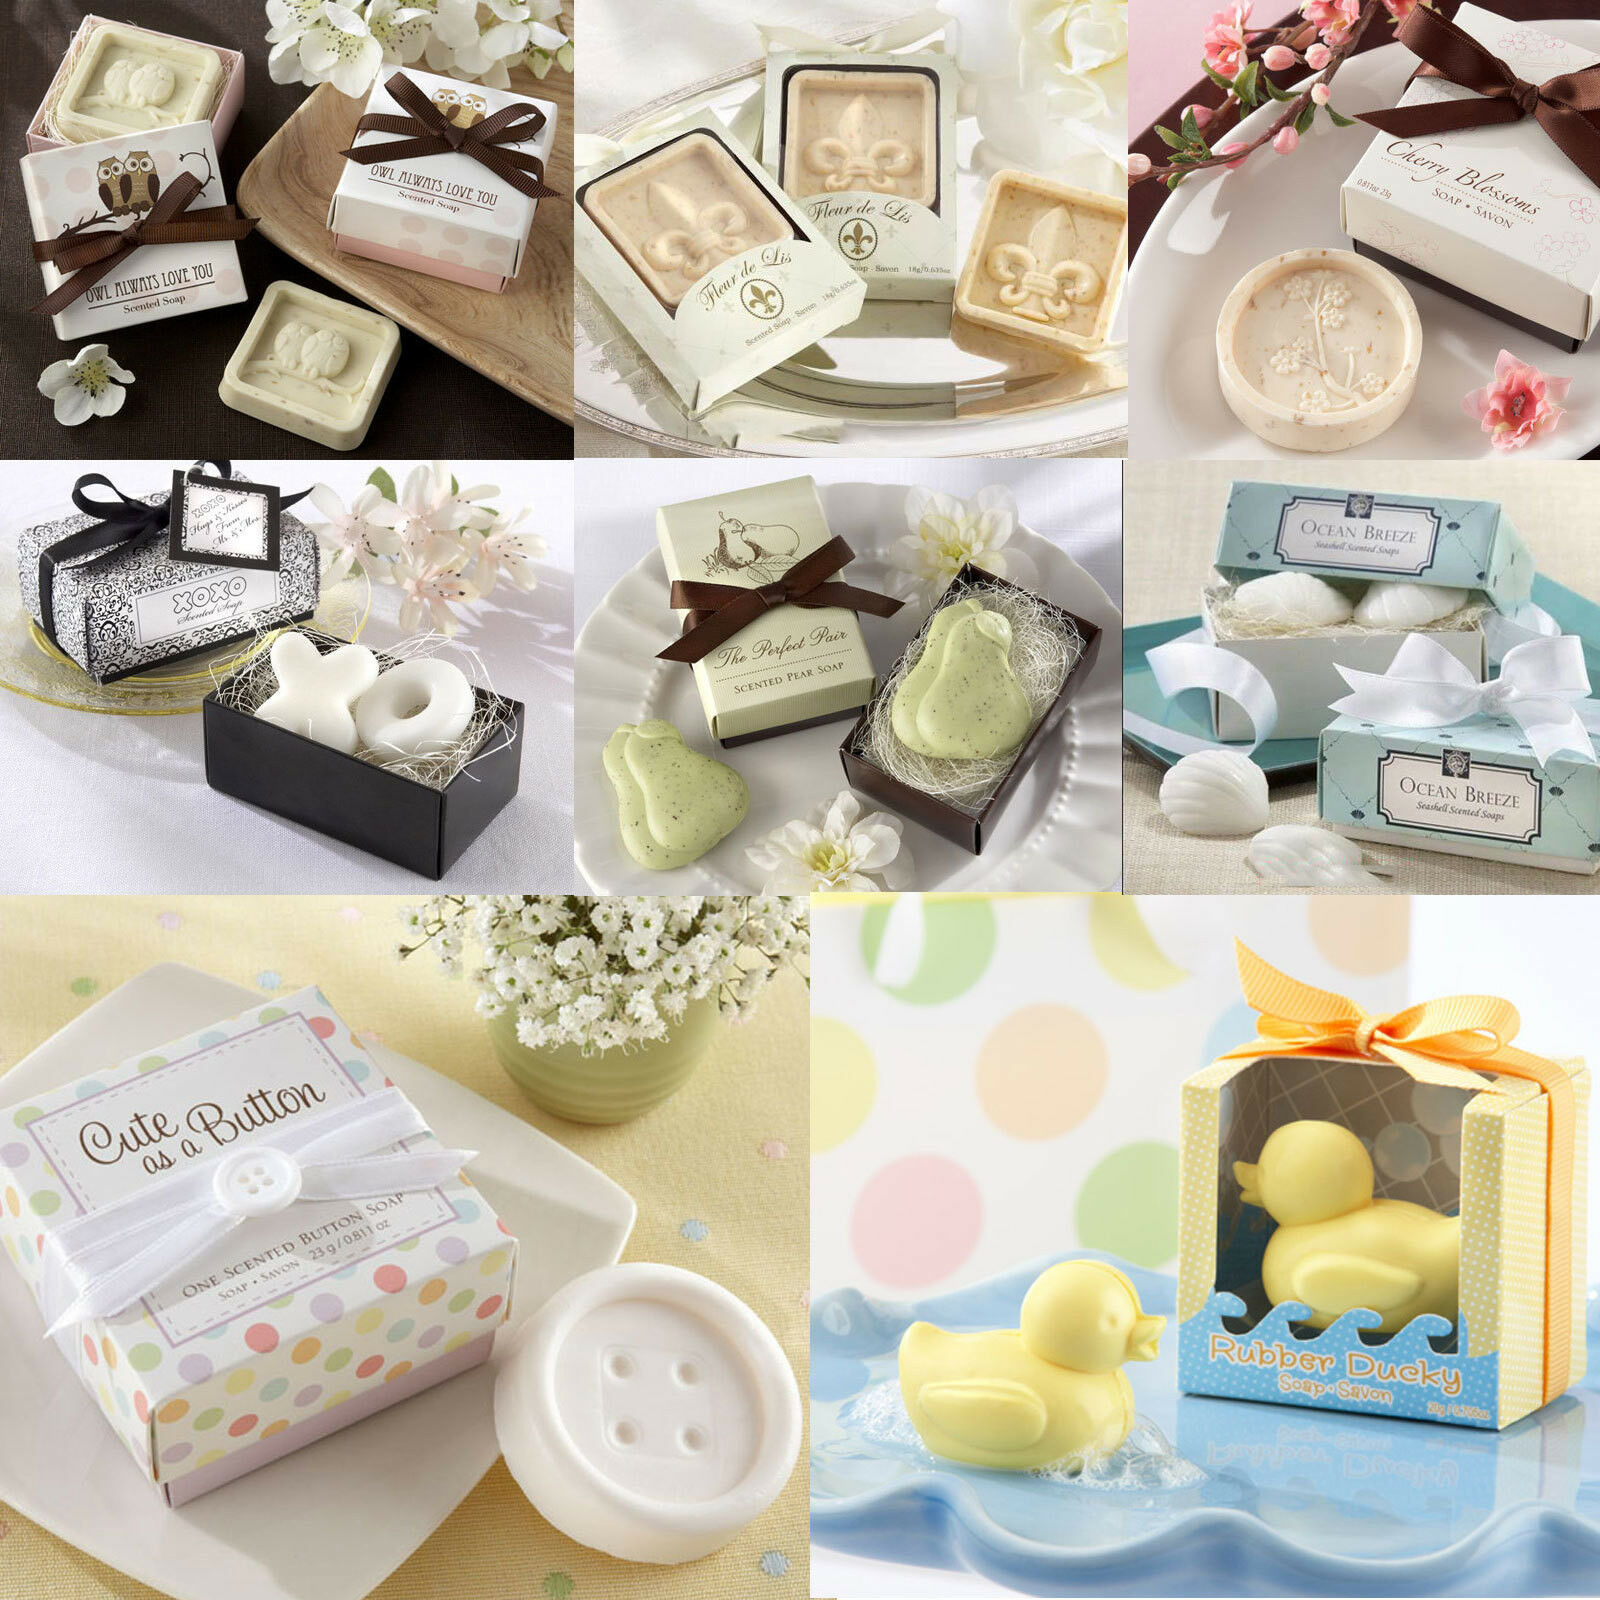 Creative Cute Gift Handmade Small Bath Soap Wedding Favors Bridal Party Shower Ebay